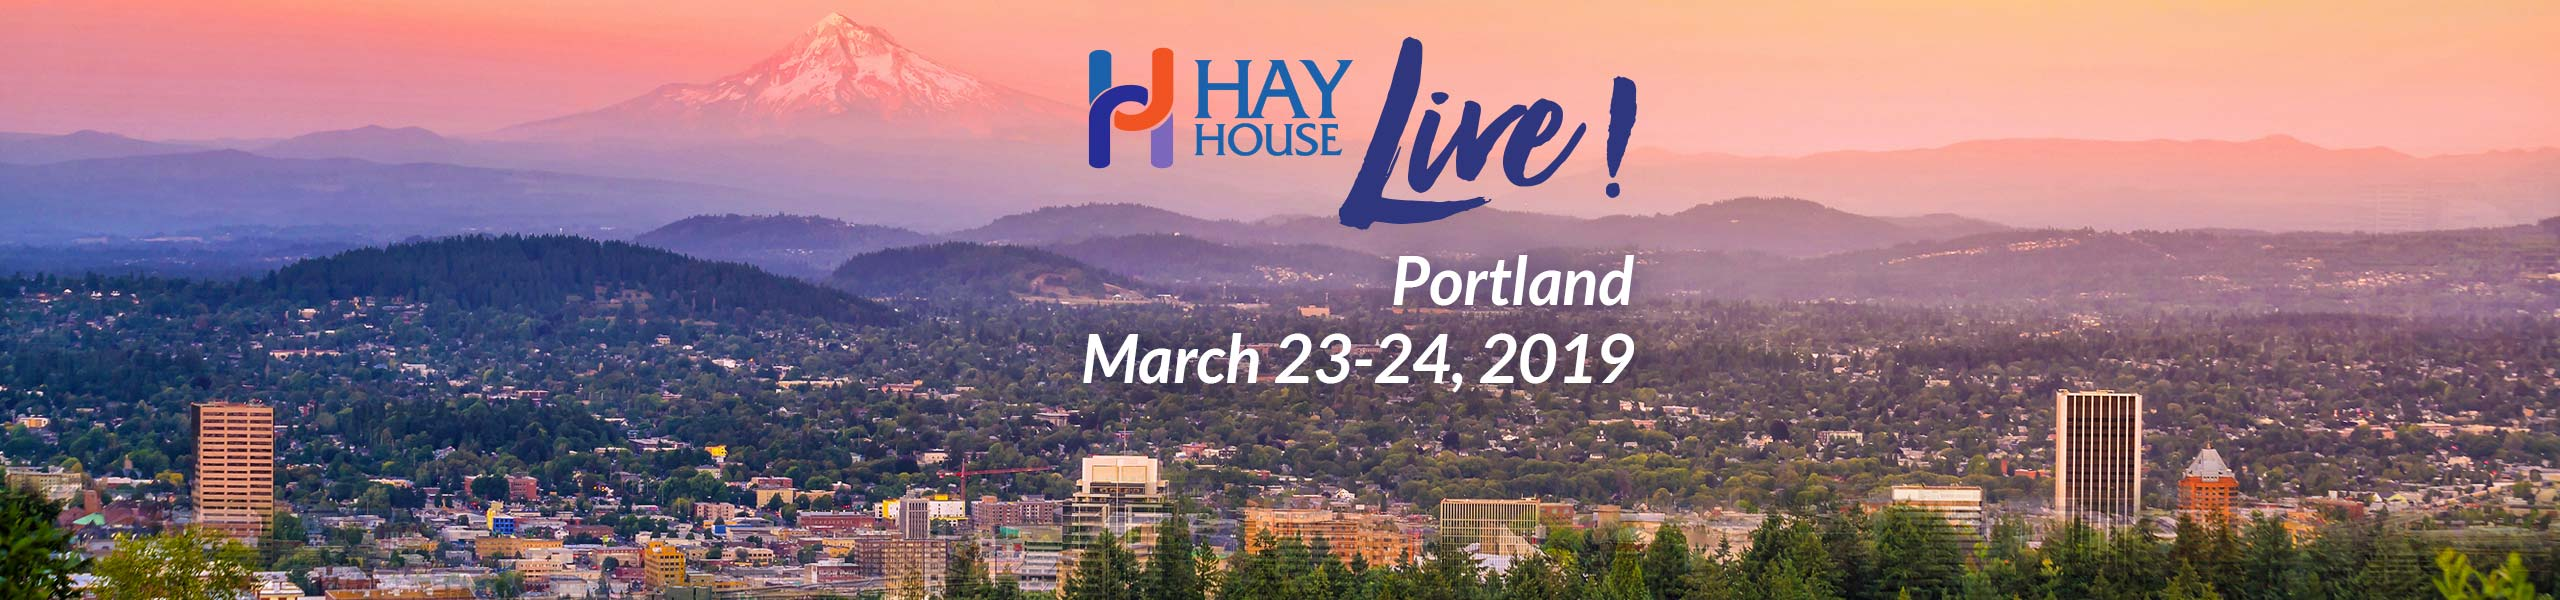 Hay House Live! Portland 2019 - Dr. Mike Dow